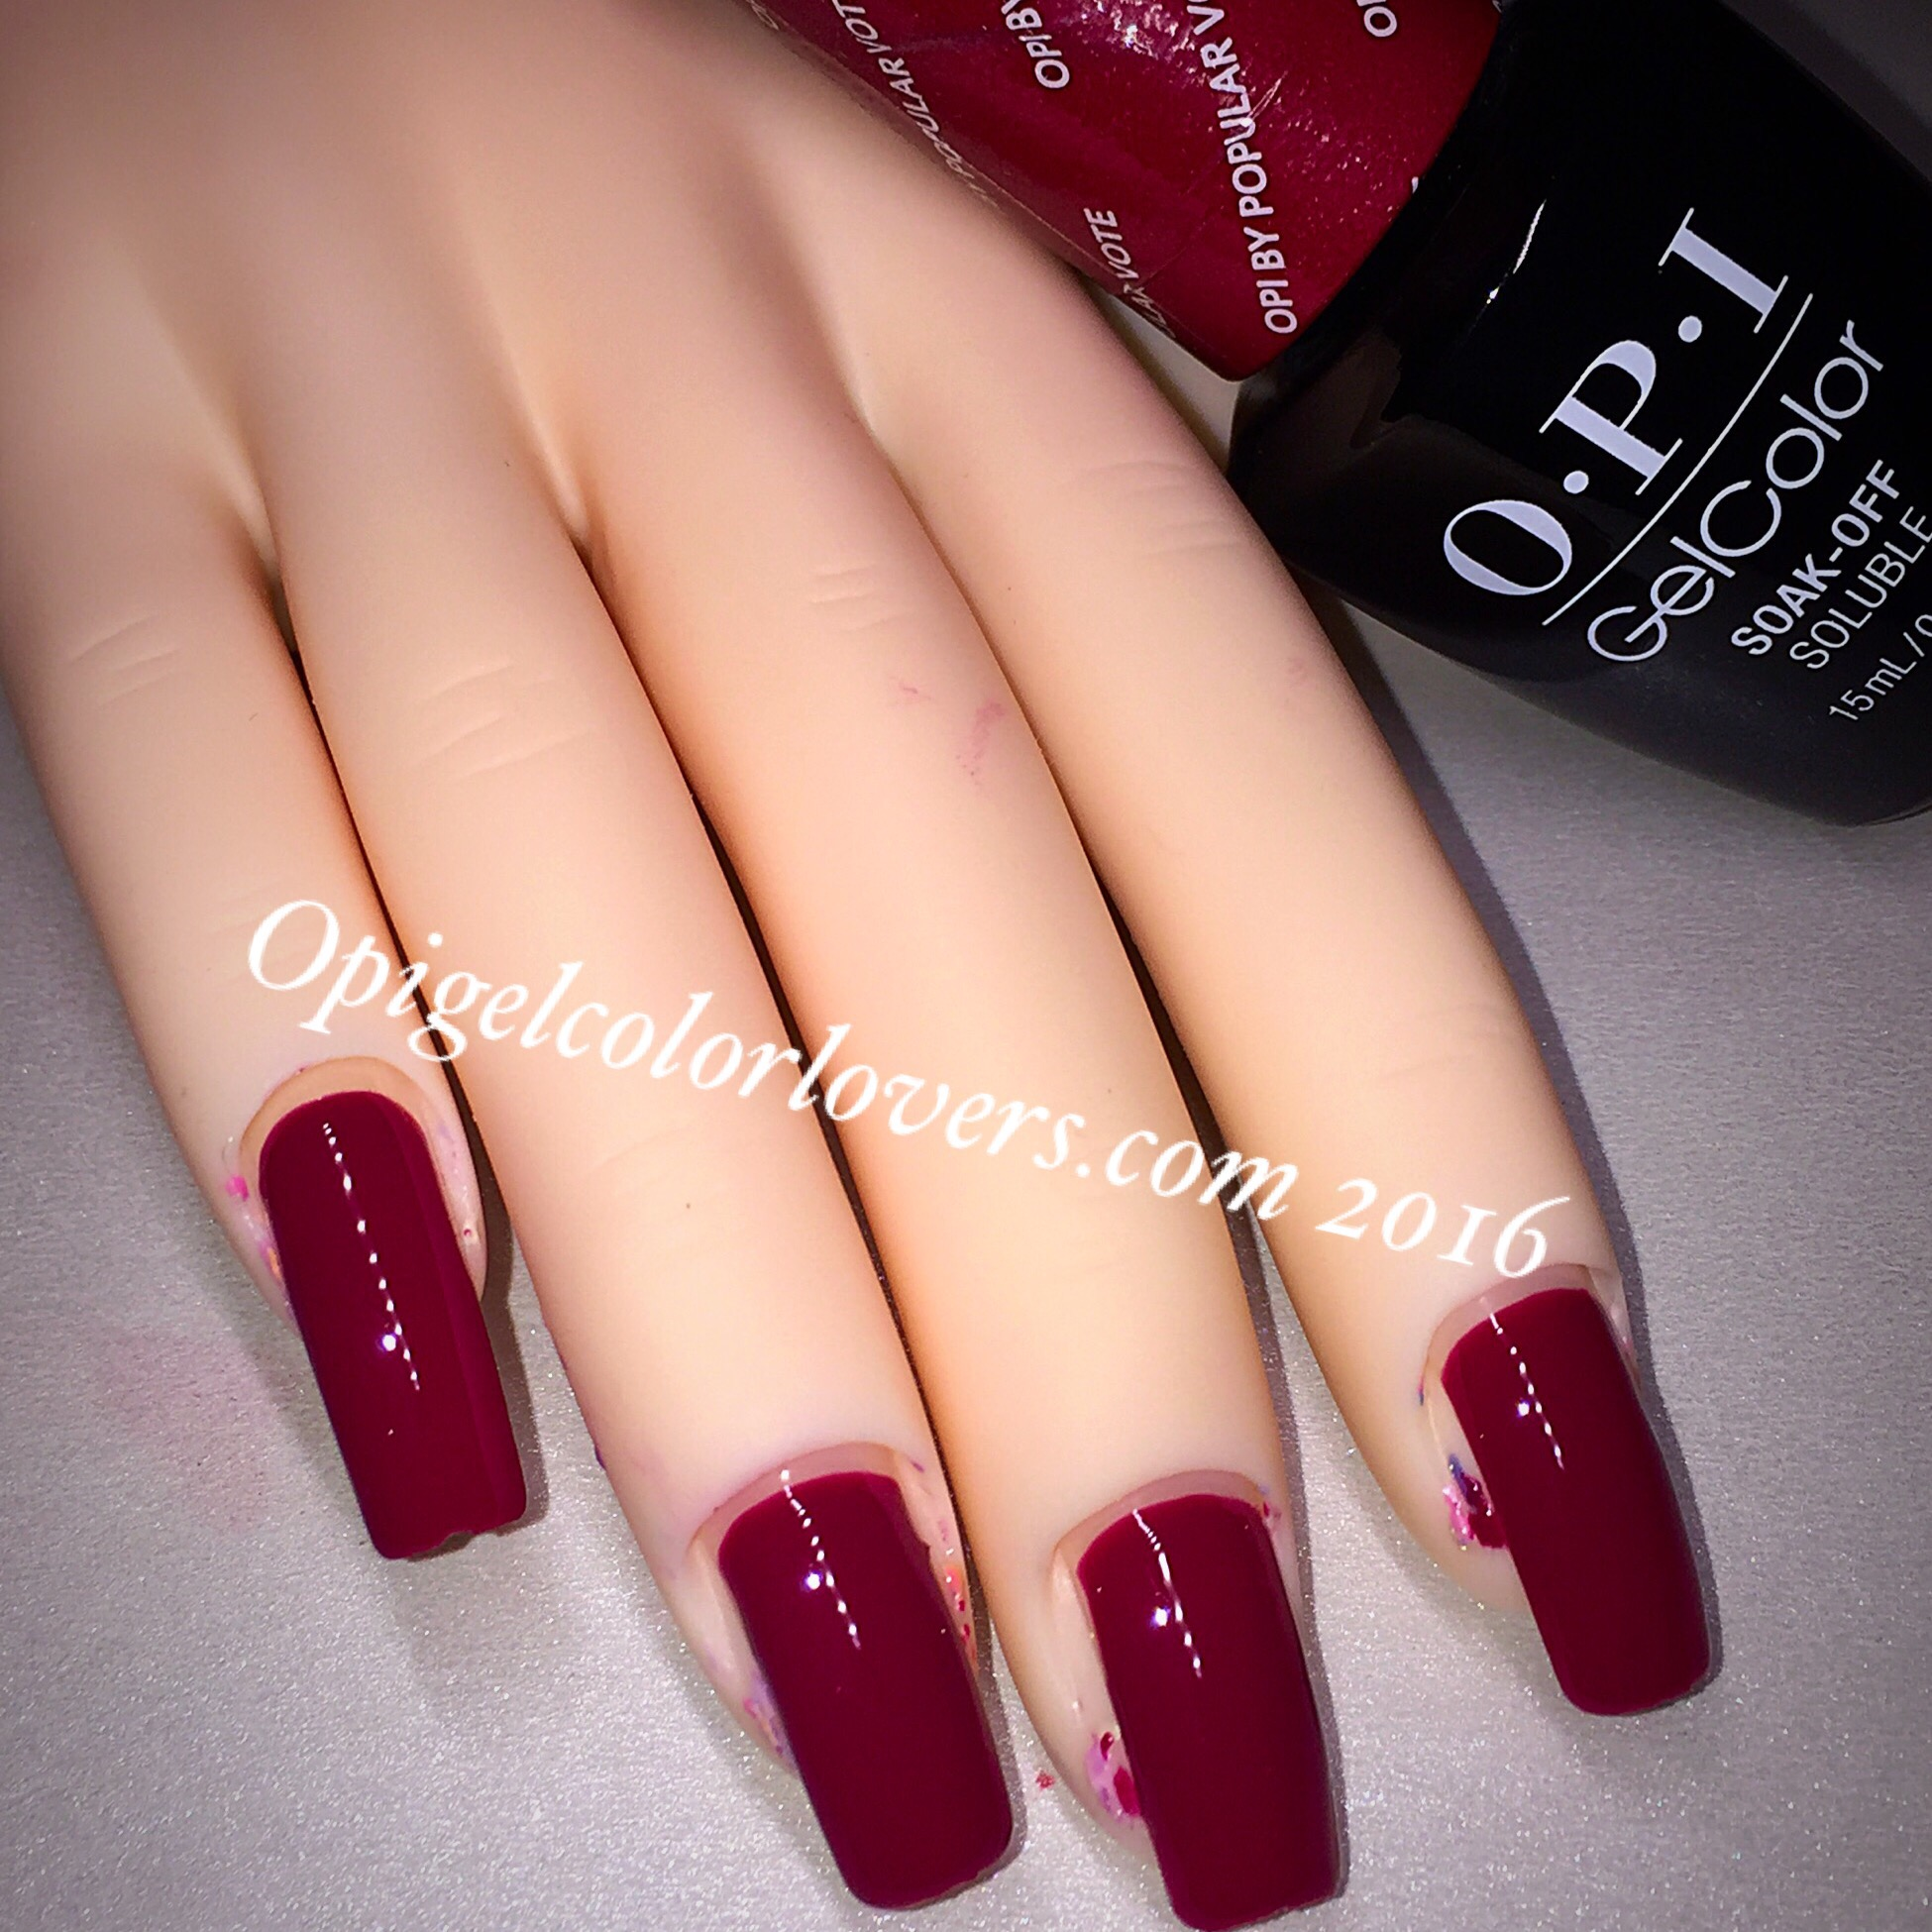 OPI GelColor Lovers Washington, D.C. Collection Fall 2016